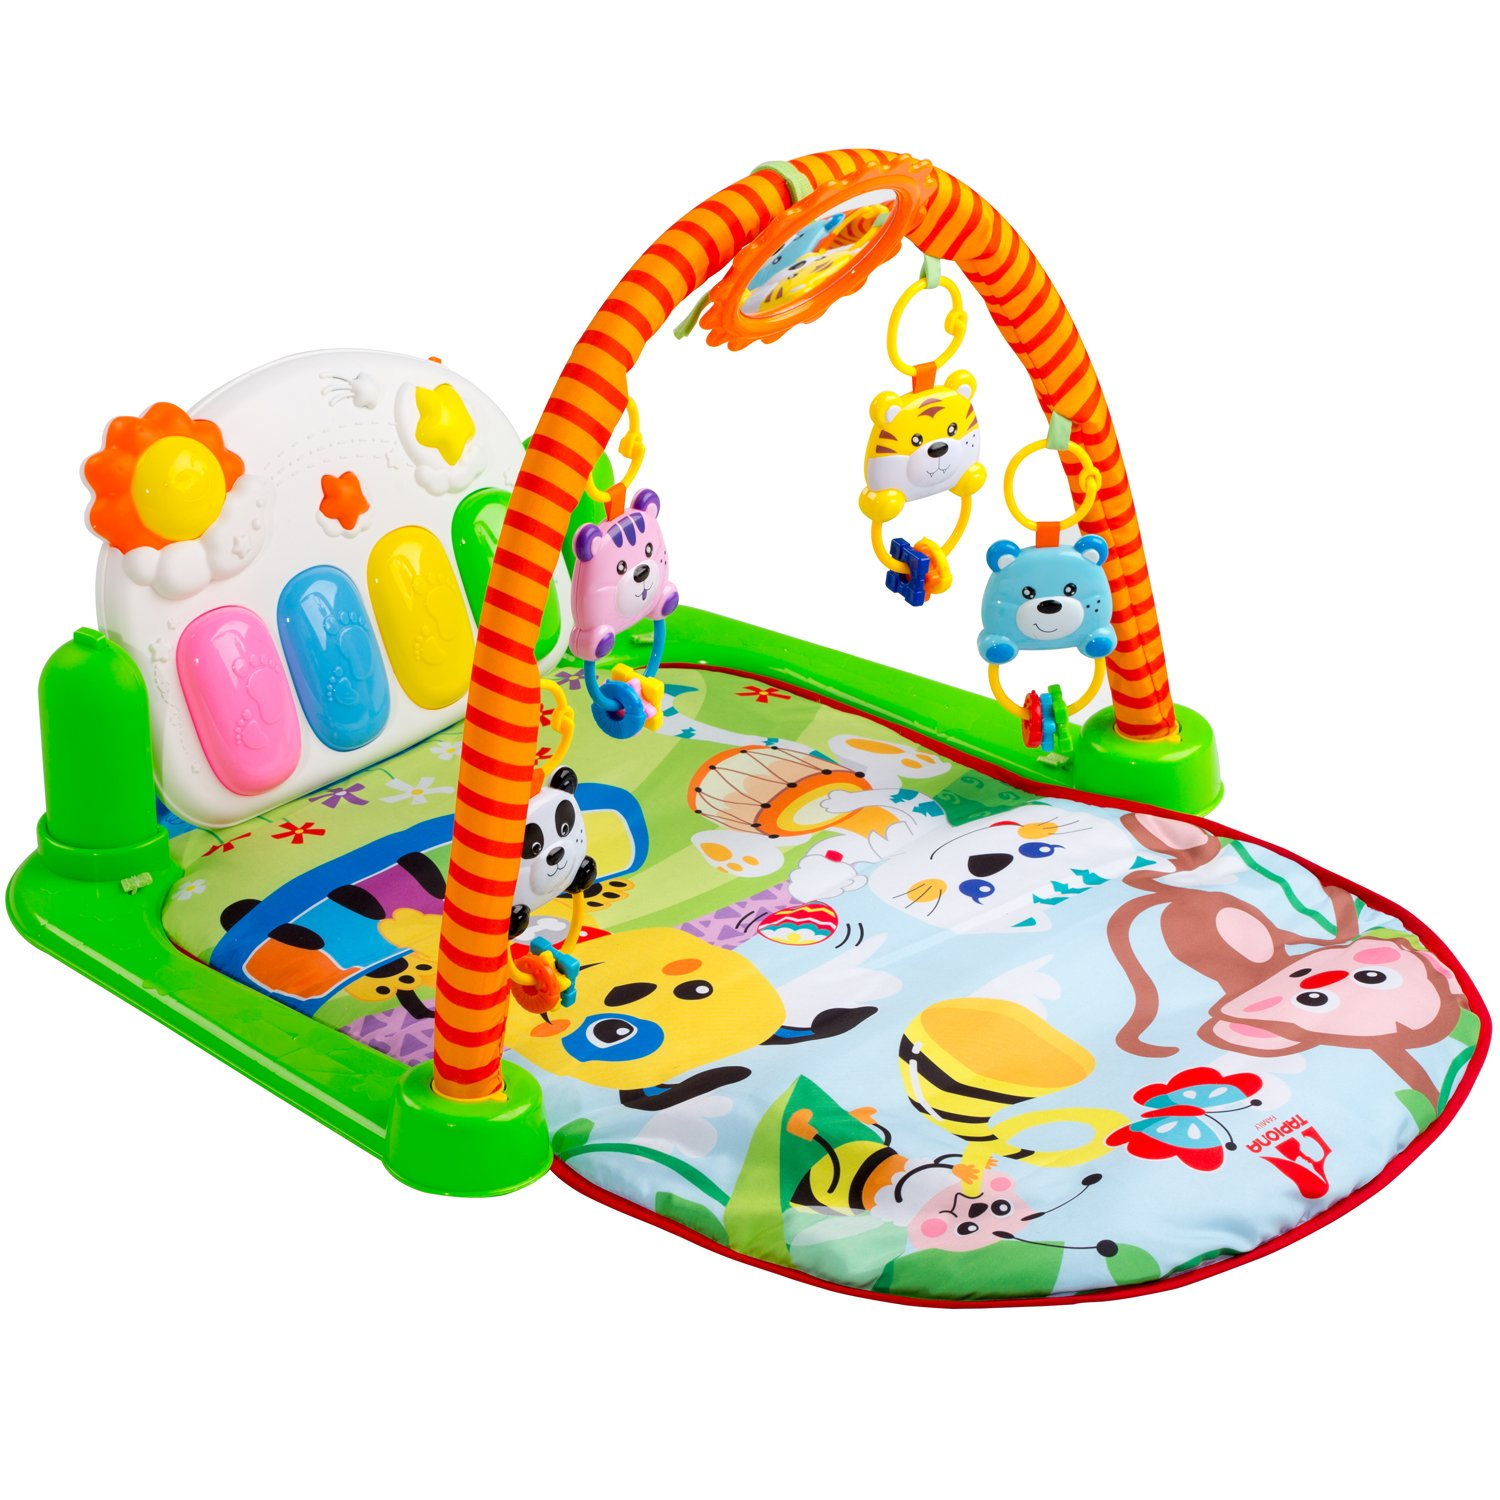 Tapiona Baby Activity Play Gym - Kick and Play Baby Mat, Baby Toys 0-3, 3-6 Months and Mirror, Boy and Girl Newborn Gift, Lay and Play, Sit and Play, Tummy Time